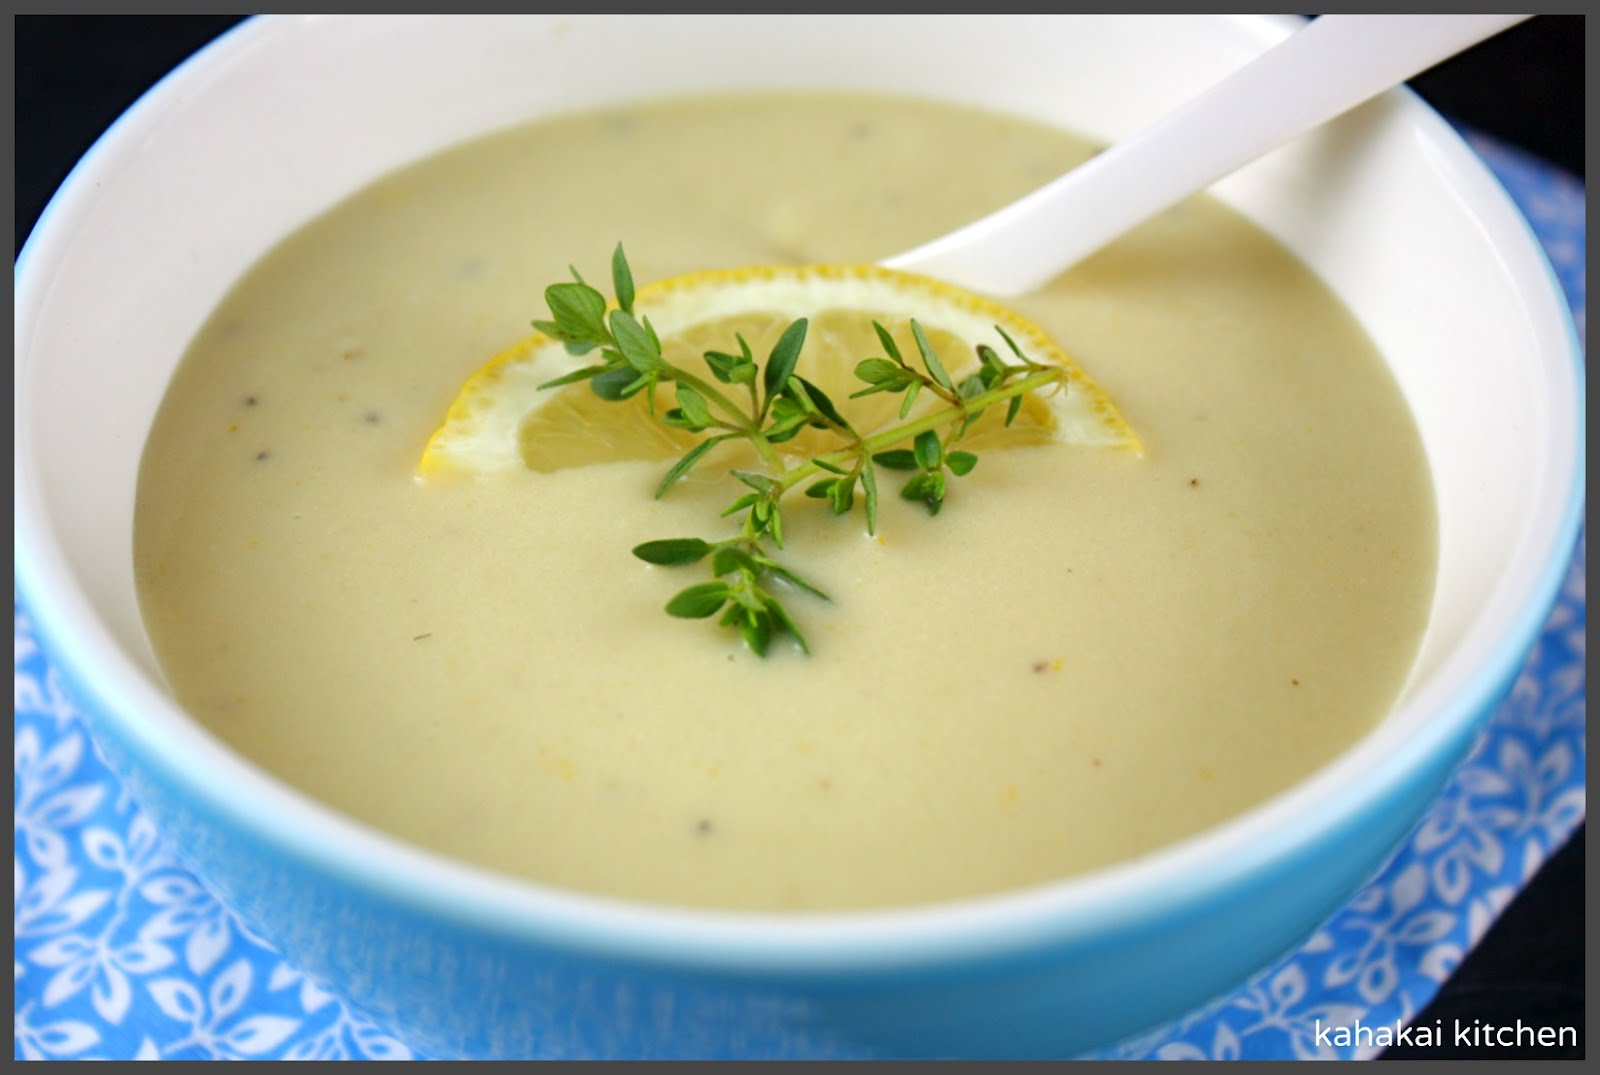 ... soup broccoli soup with lemon and ricotta leek soup with lemon